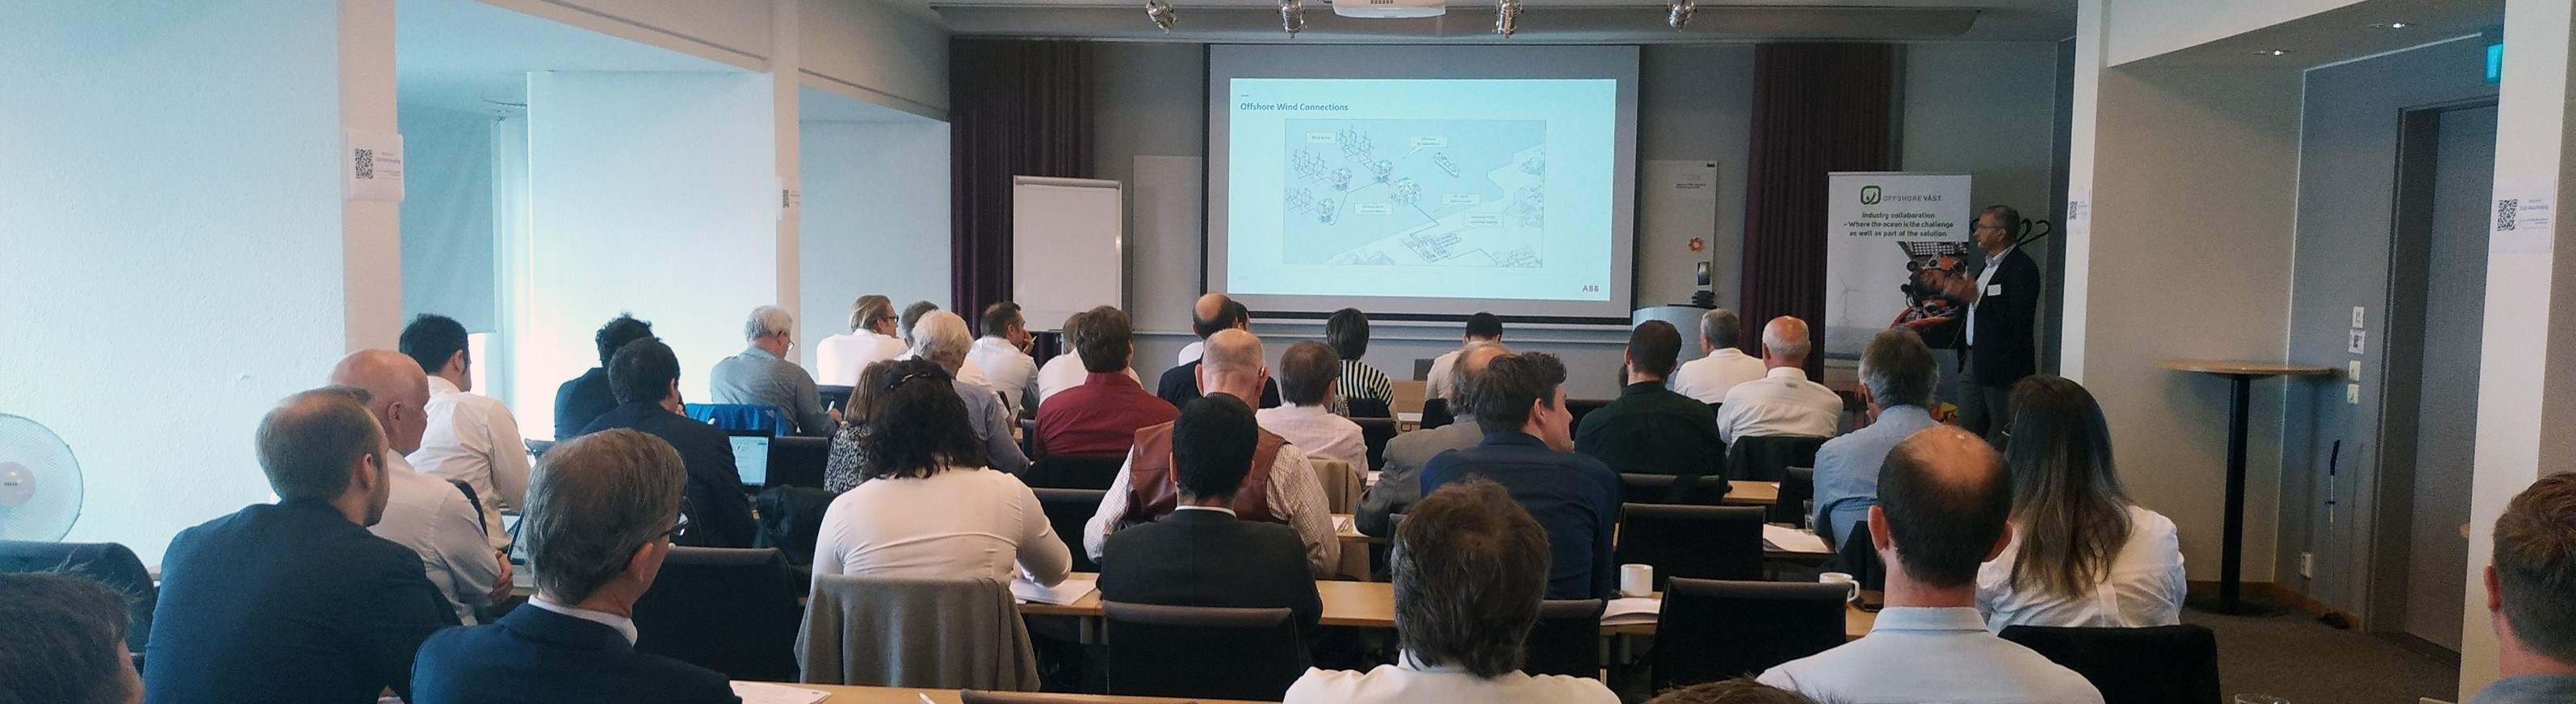 #3 NETWORKING WORKSHOP CELEBRATED IN GOTHENBURG, SWEDEN (21/05/2019)